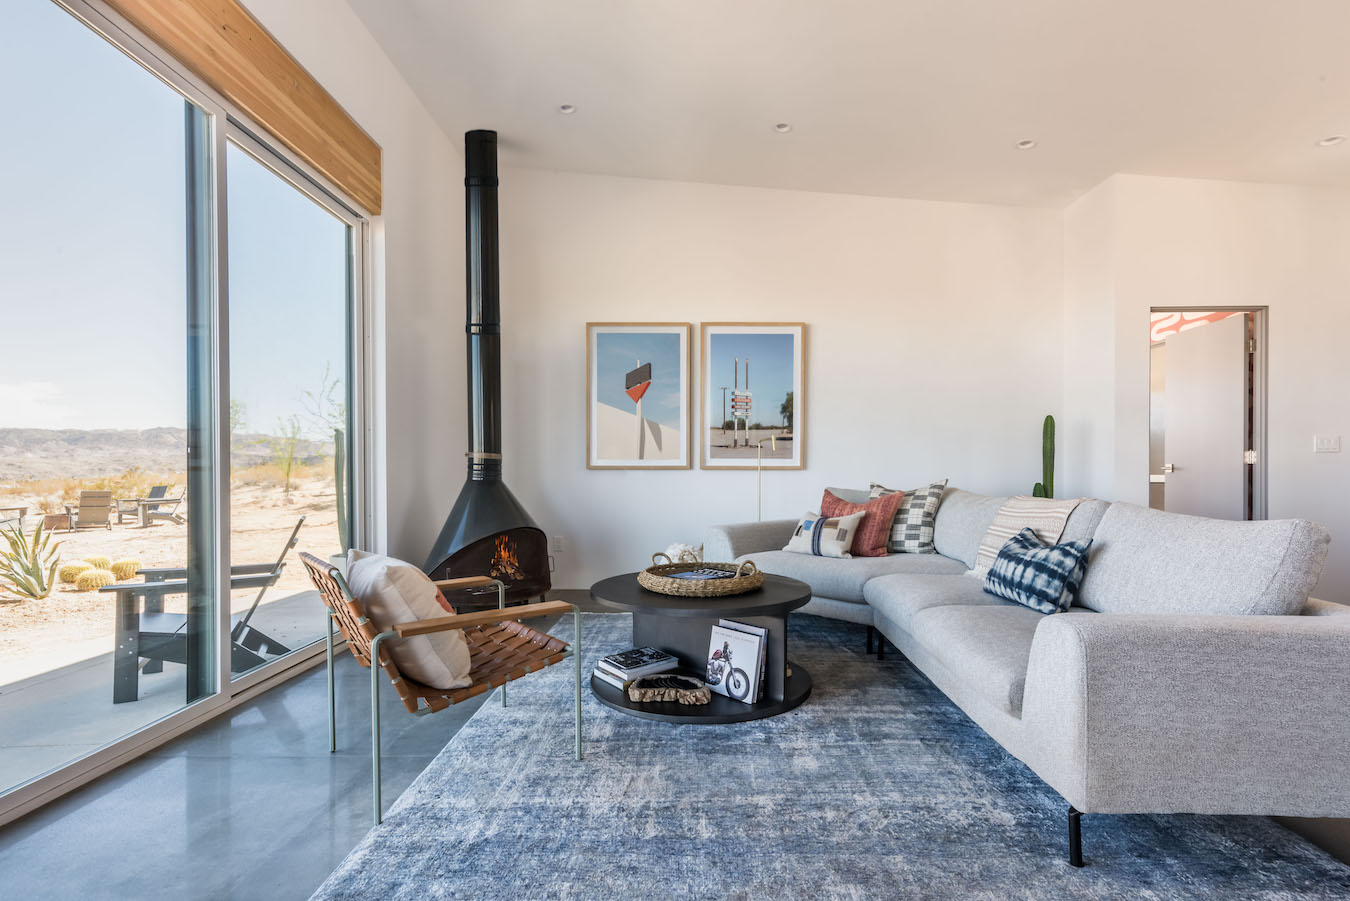 Hightail House Offers a Luxury Hotel Experience in Joshua Tree